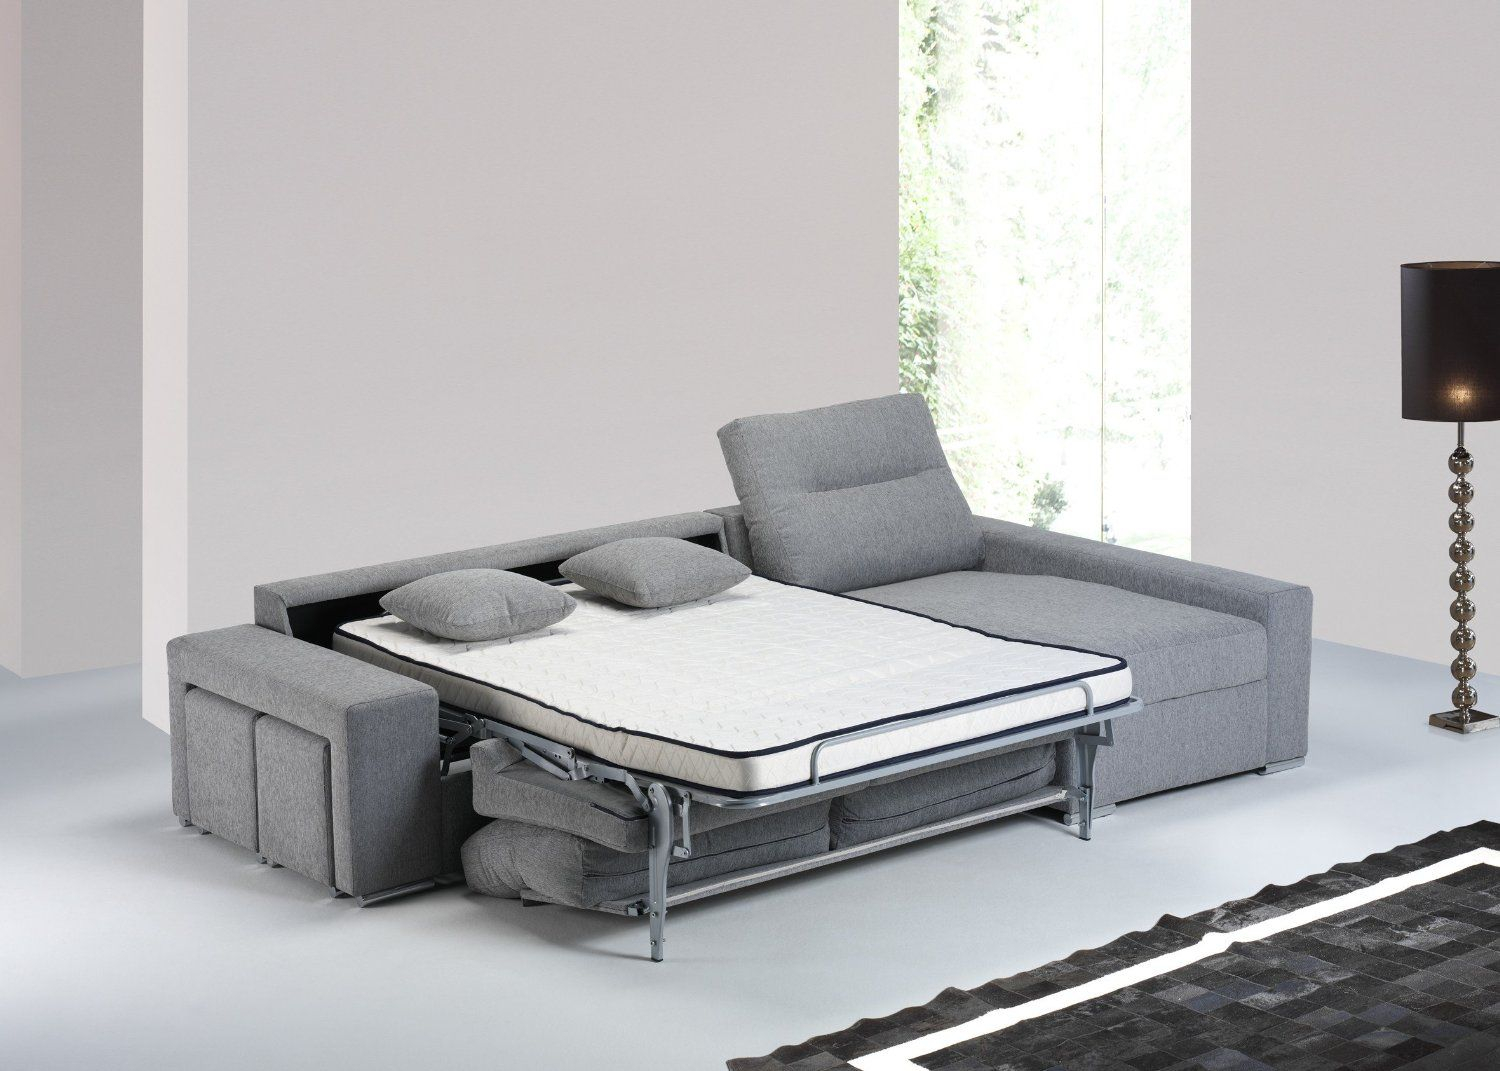 Canapé convertible d angle CONDE couchage quoti n 140